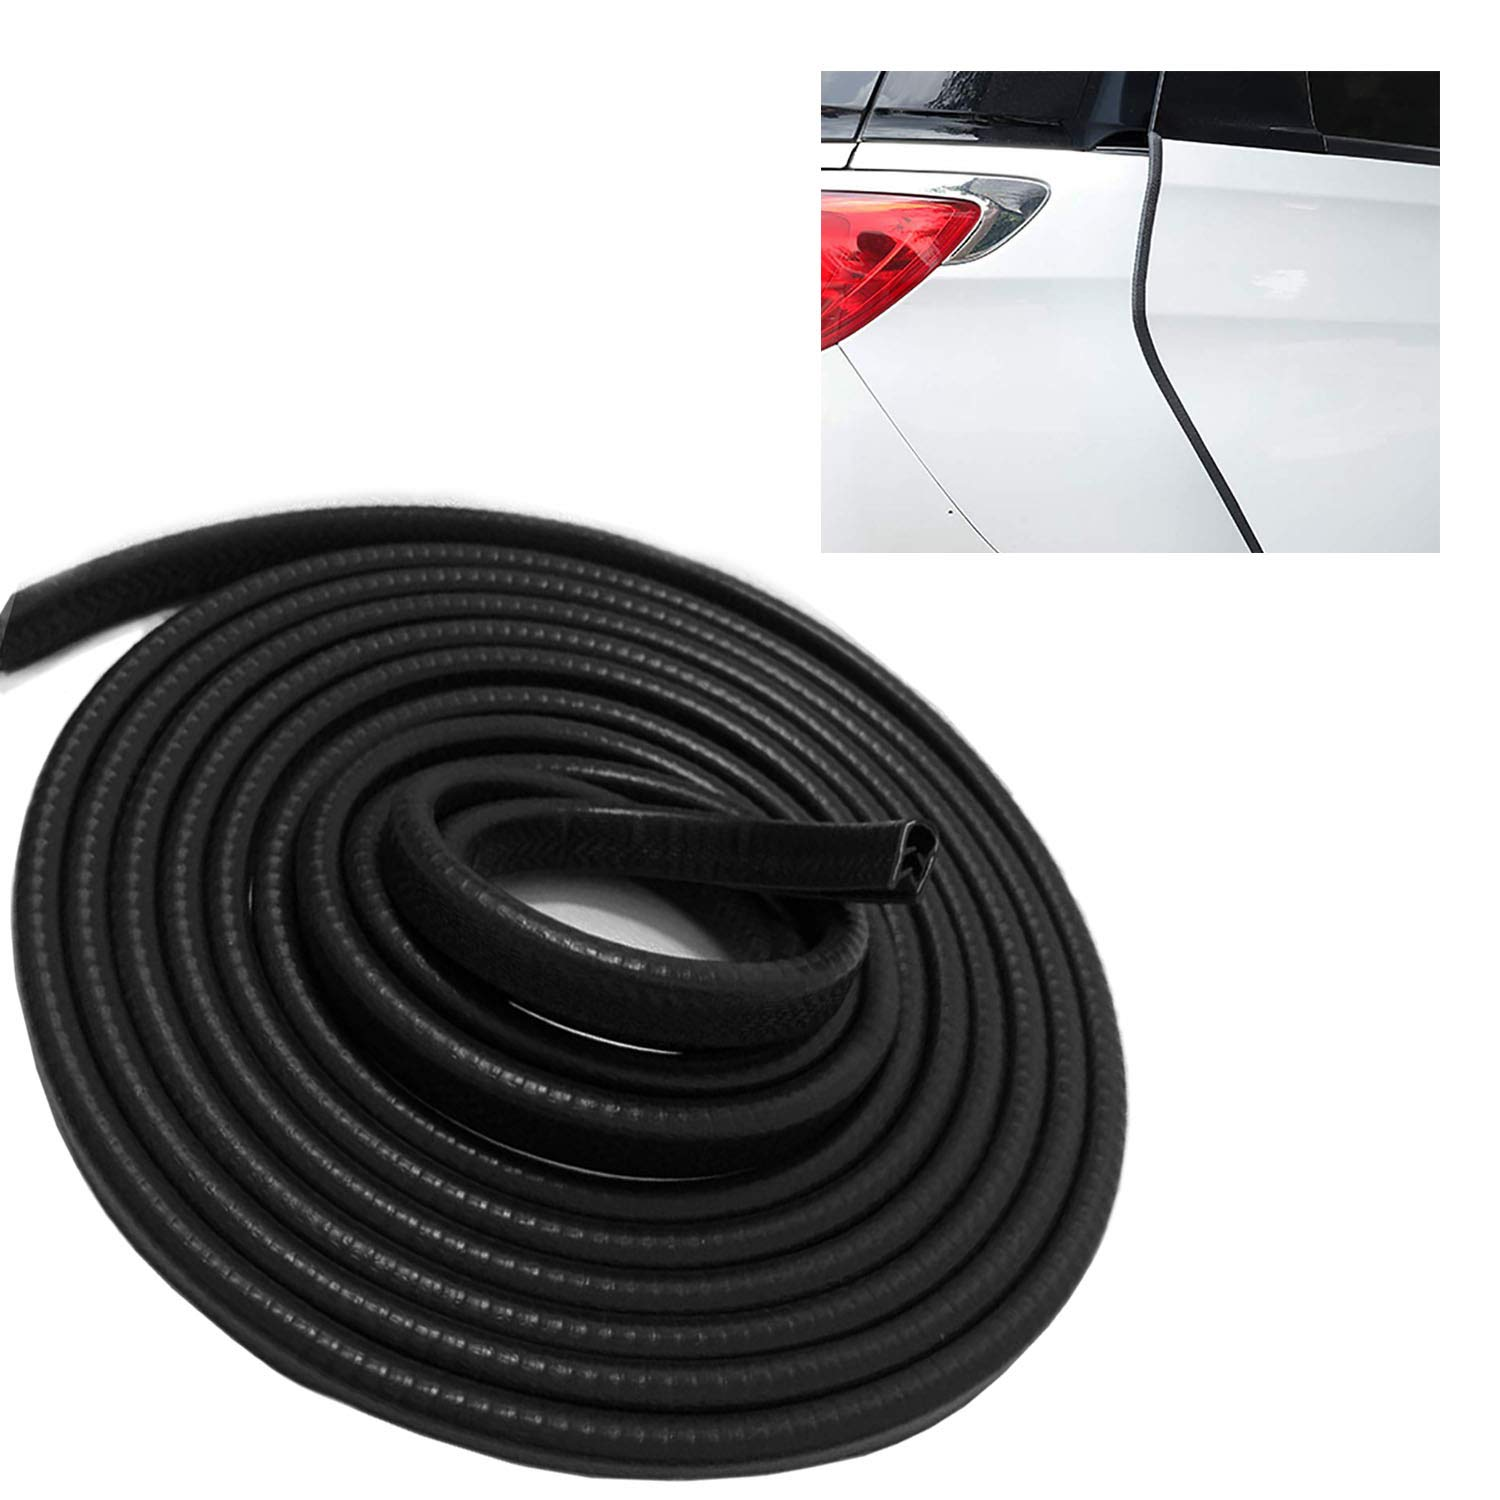 YIFAT 16Ft(5M) Car Door Edge Guards U Shape Edge Protector Guard Strip Rubber Seal Trim 5 M Car Protection Fit for Most Car